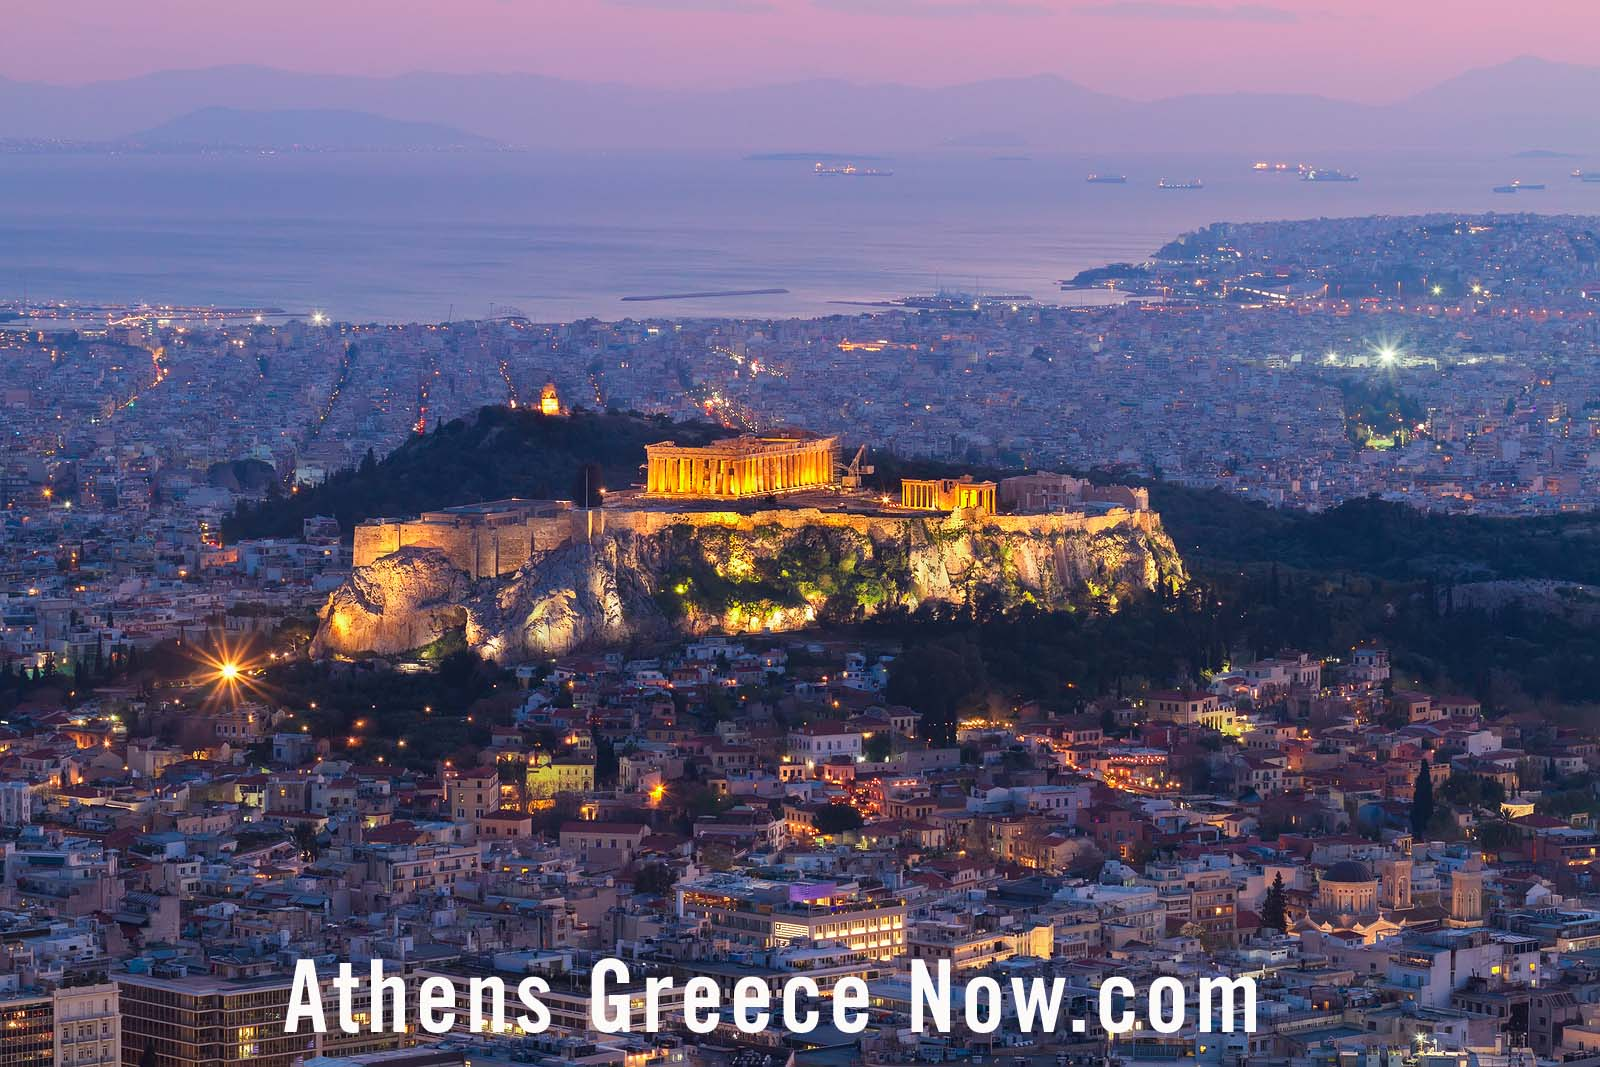 The Acropolis In Athens Greece Cost Of Building The